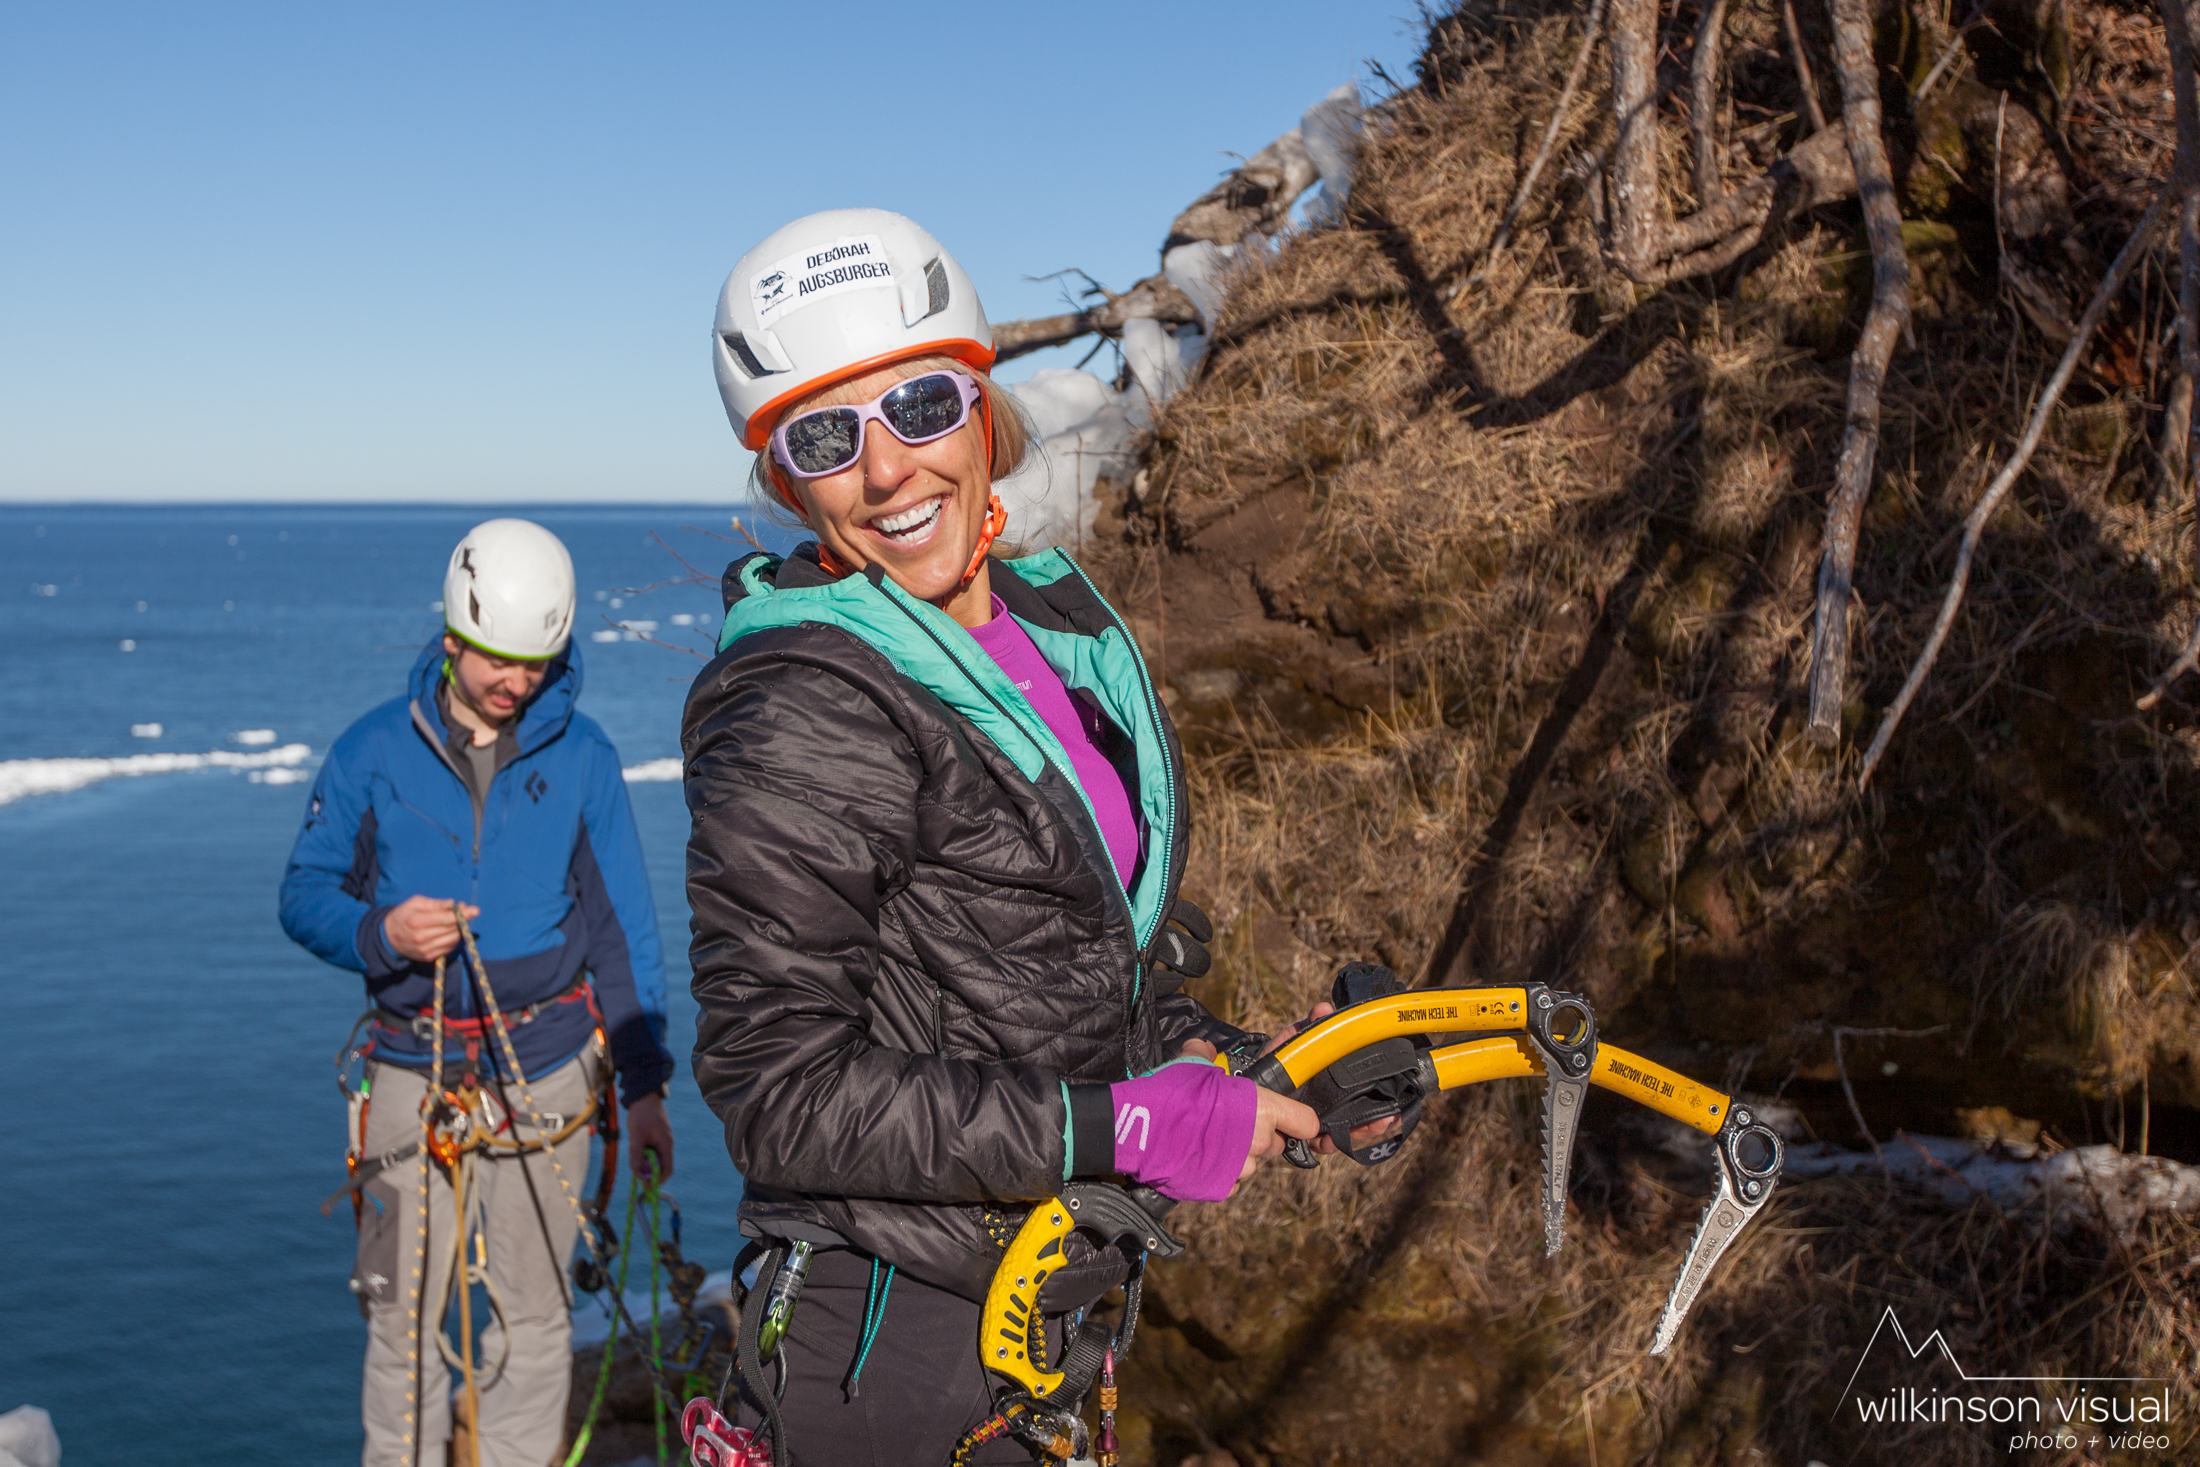 Clinic participant Deborah Augsburger is all smiles after climbing Bridal Veil at Pictured Rocks National Lakeshore, Michigan. Grivel ice tools shown.